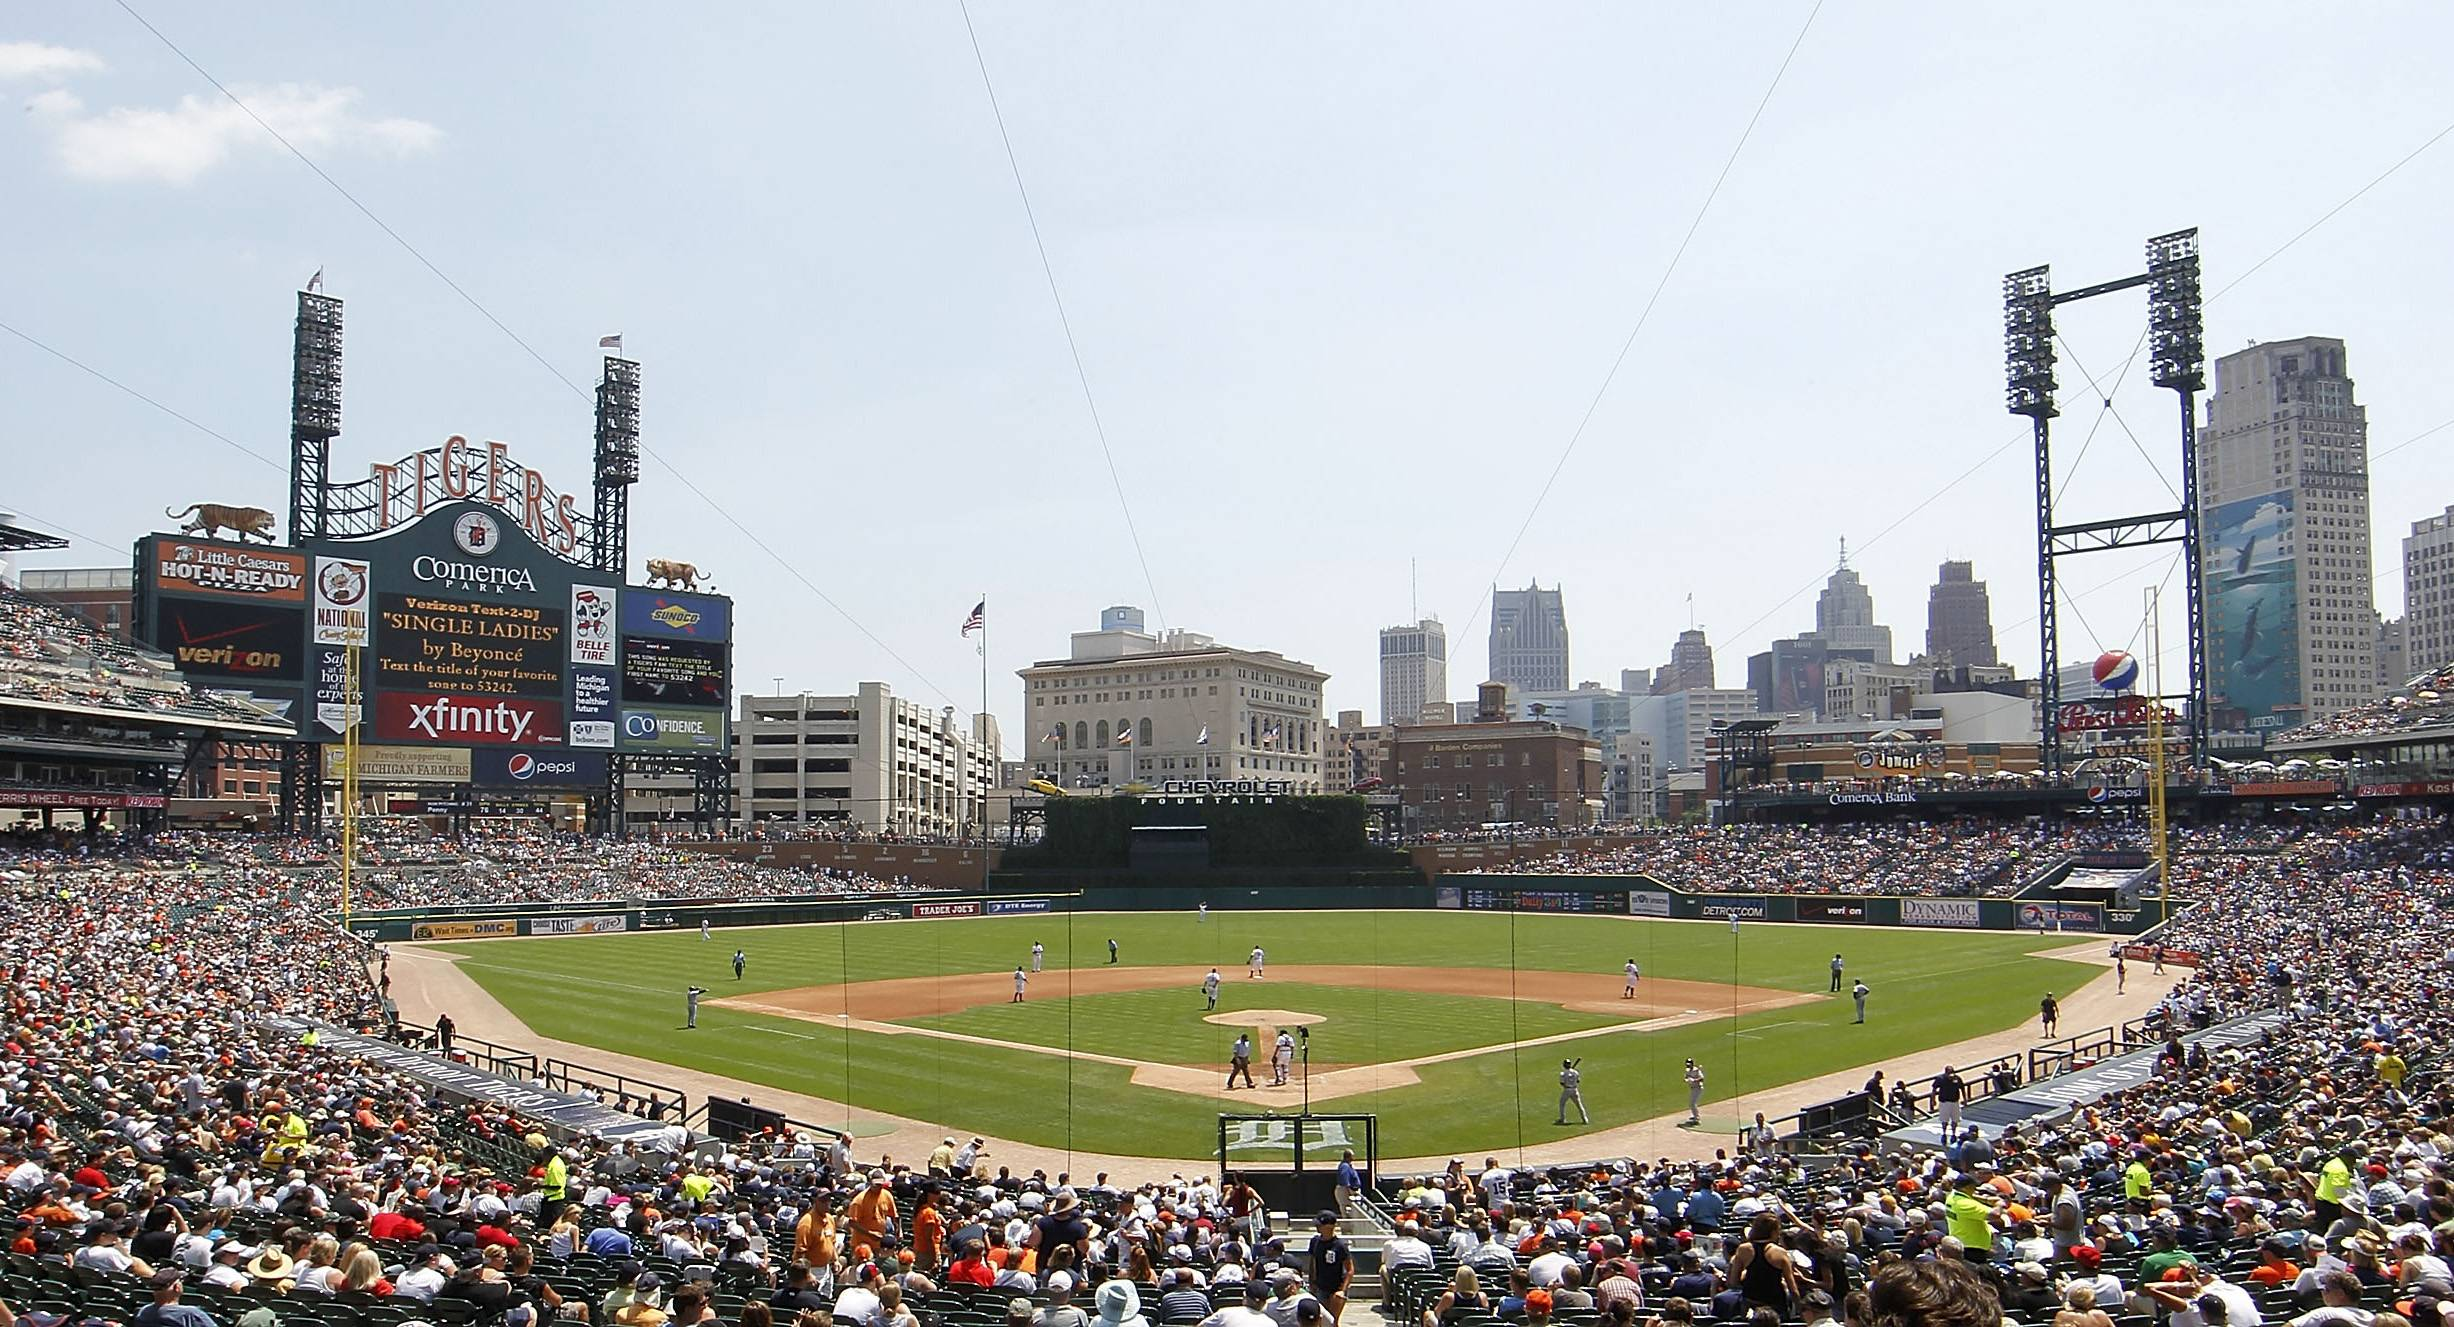 040212-shows-lets-stay-together-detroit-honeymoon-comerica-park.jpg